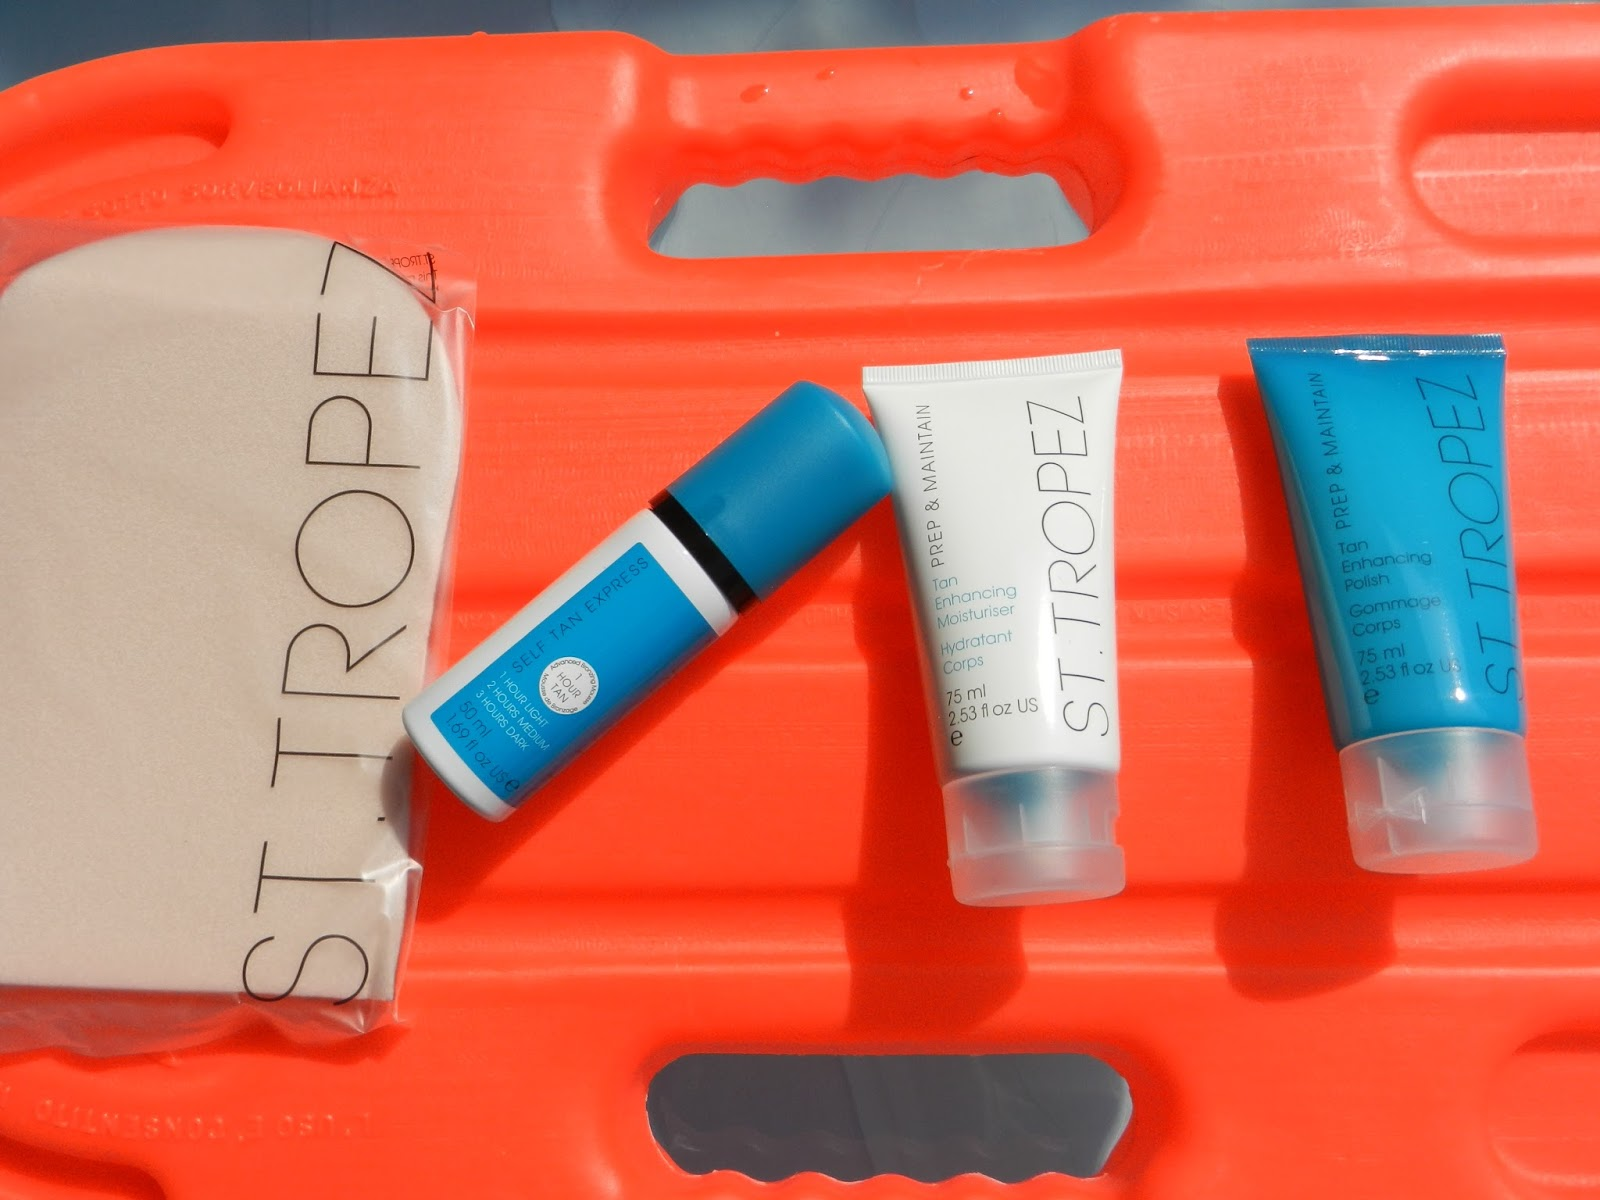 St. Tropez Self Tan Express Starter Kit Review